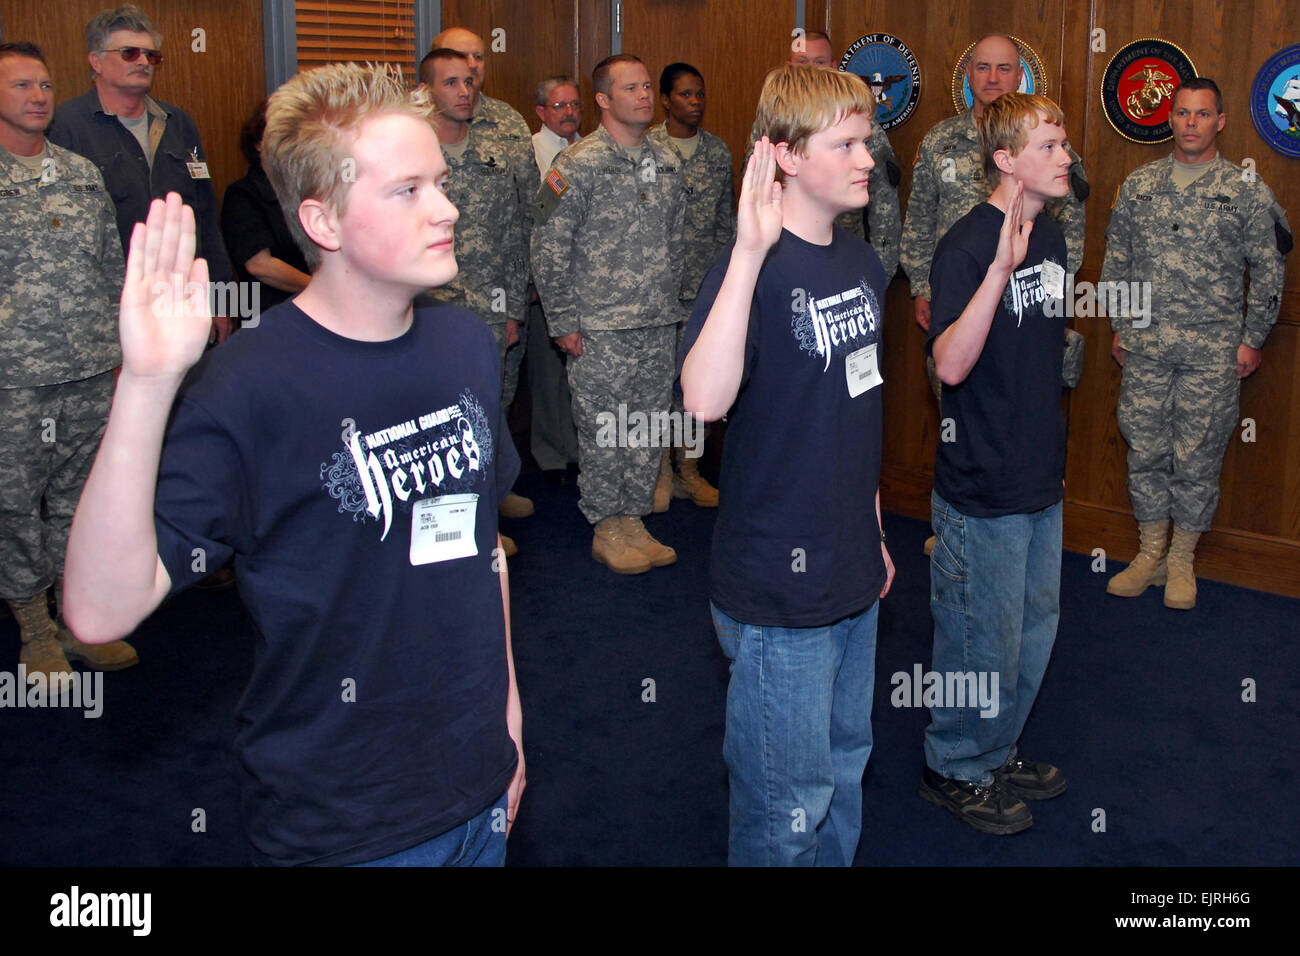 In October 2009, triplets John Paul, Jacob Erik and Joshua Clint Temple took the oath of enlistment at the Little Rock, Arkansas, Military Entrance Processing Station. That year the U.S. Army and other military services' active and reserve components reported record recruiting numbers. (Photo: Chris A. Durney, courtesy of Wikimedia Commons.)